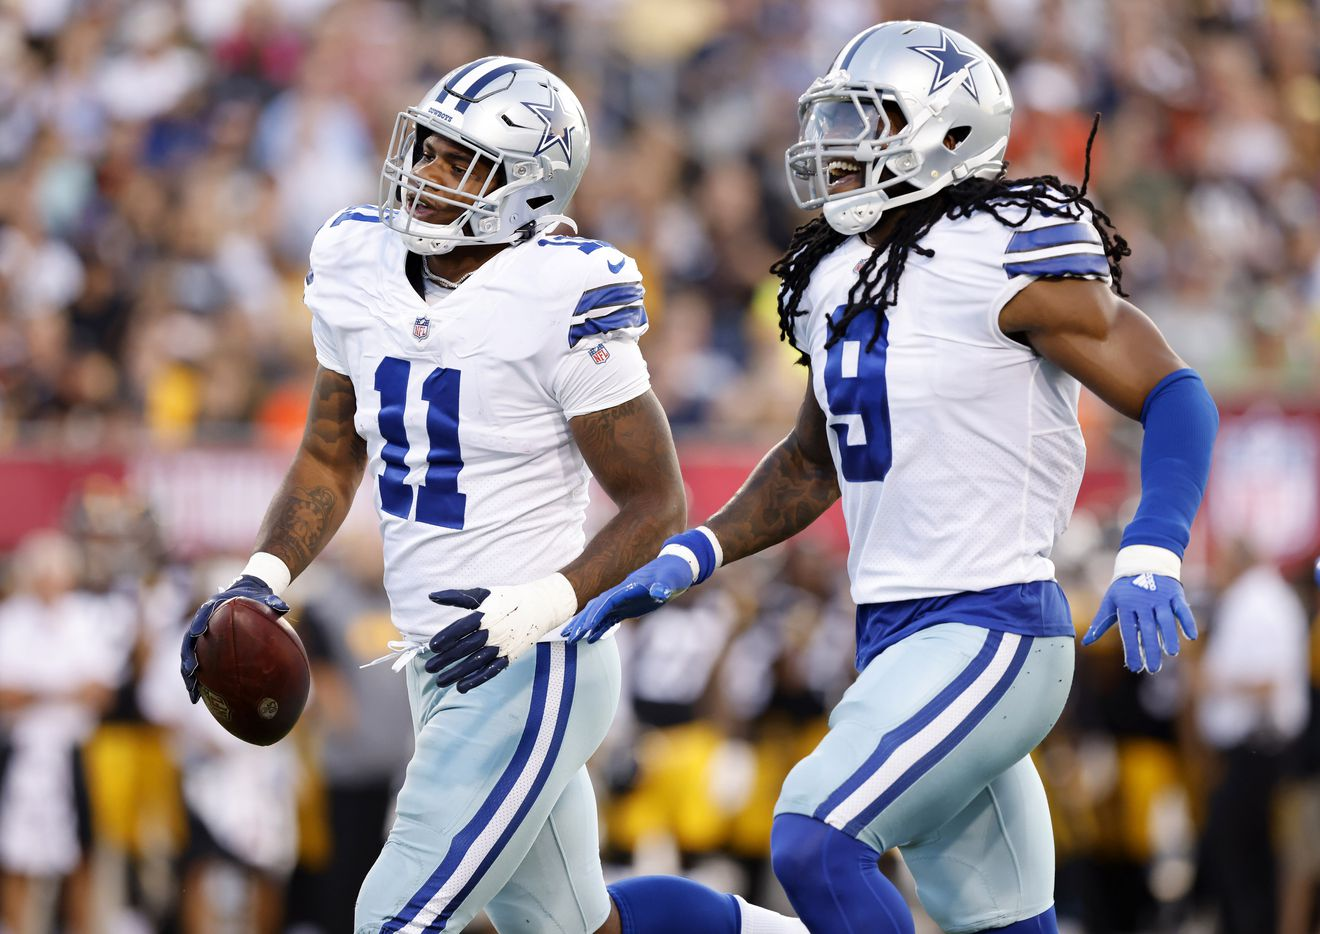 Dallas Cowboys linebacker Micah Parsons (11) celebrates his fumble recovery of Pittsburgh Steelers quarterback Mason Rudolph with teammate Jaylon Smith (9) during the first quarter of their preseason game at Tom Benson Hall of Fame Stadium in Canton, Ohio, Thursday, August 5, 2021. (Tom Fox/The Dallas Morning News)